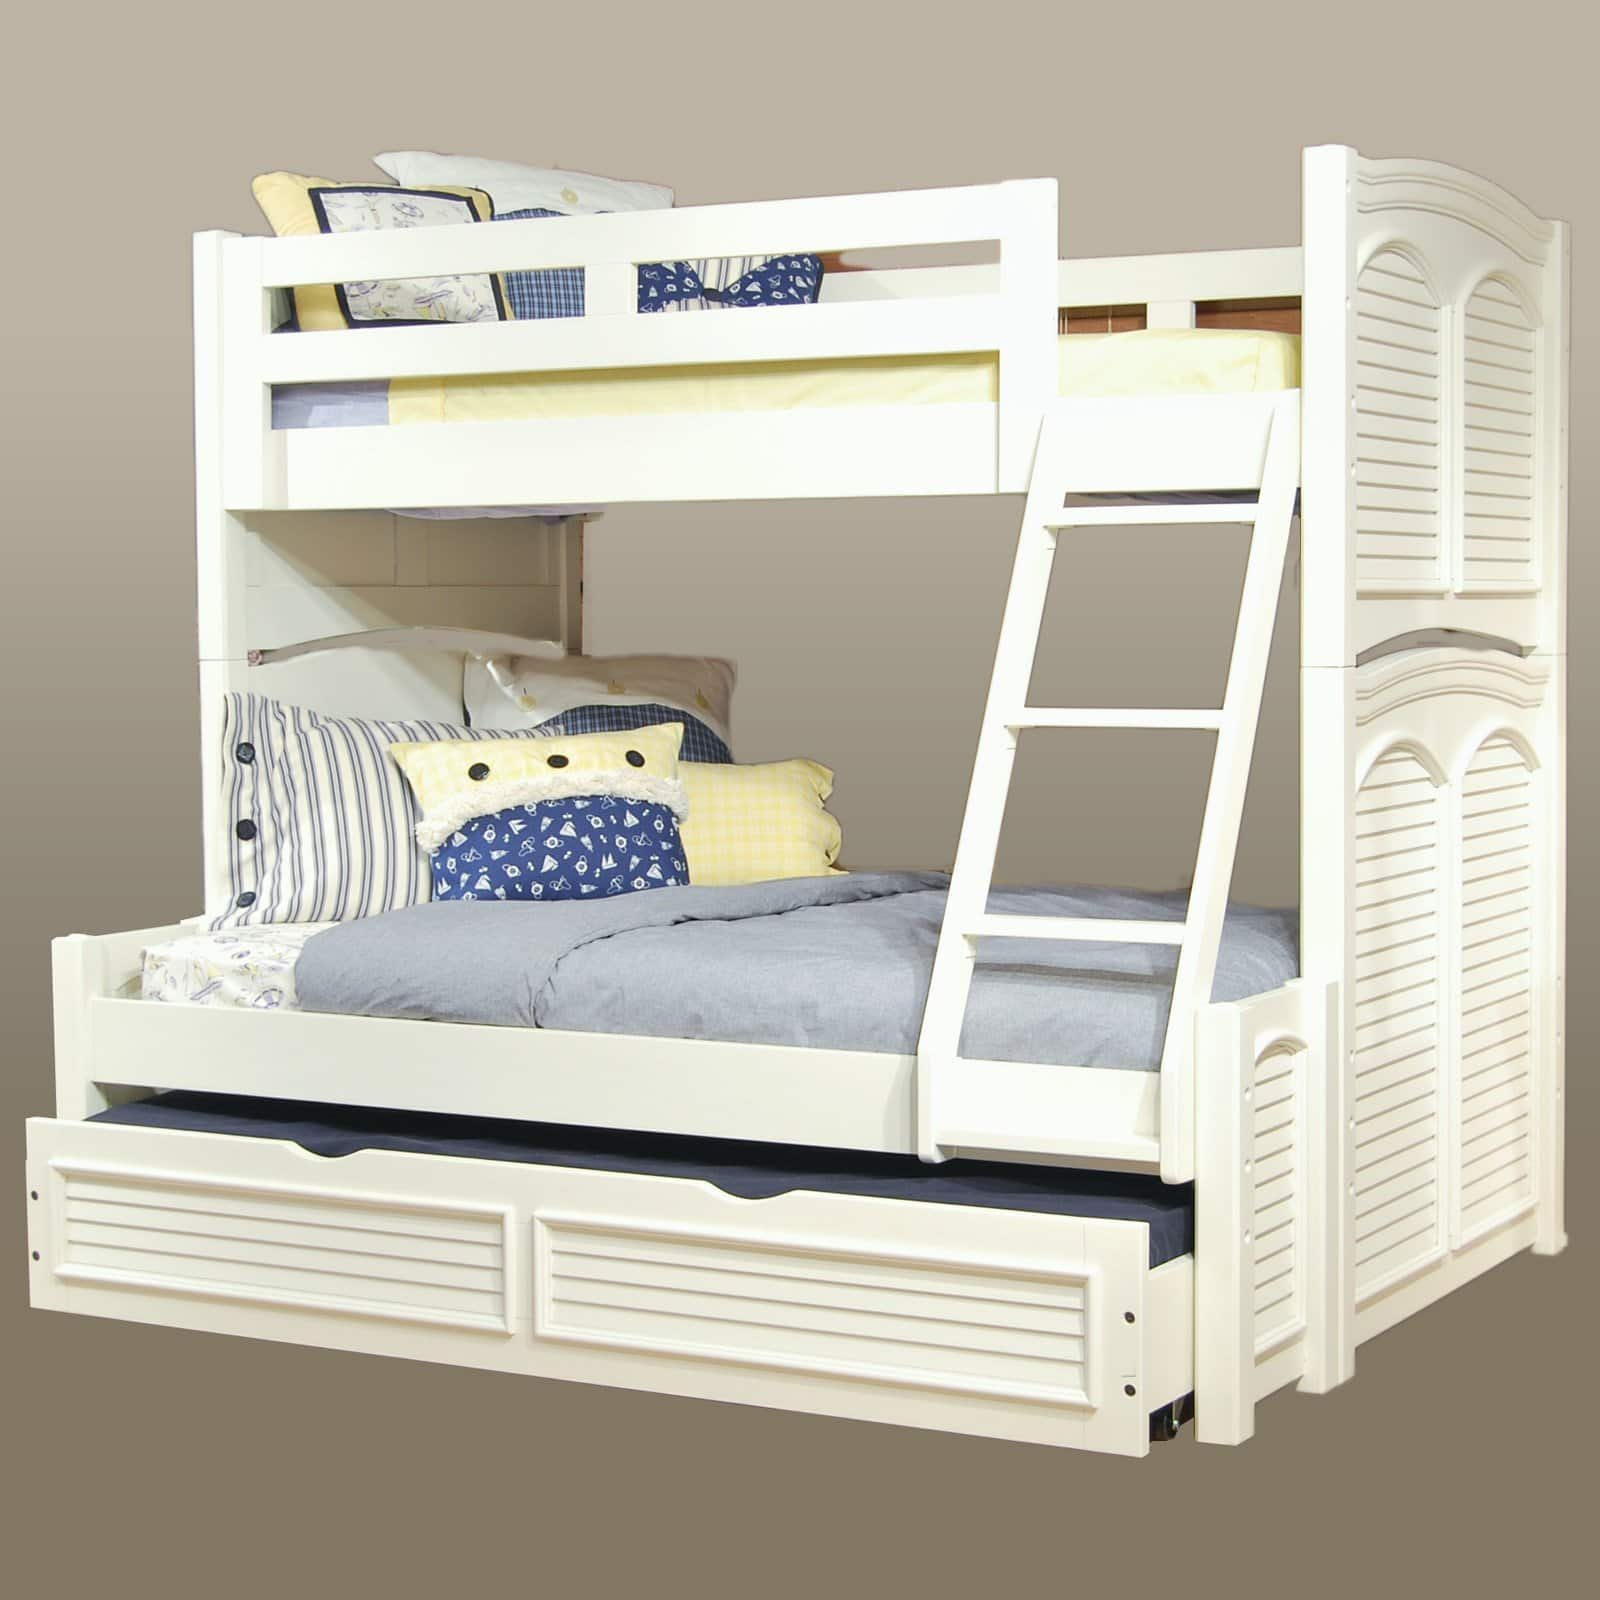 Cottage Traditions Twin over Full Bunk Bed - Eggshell White